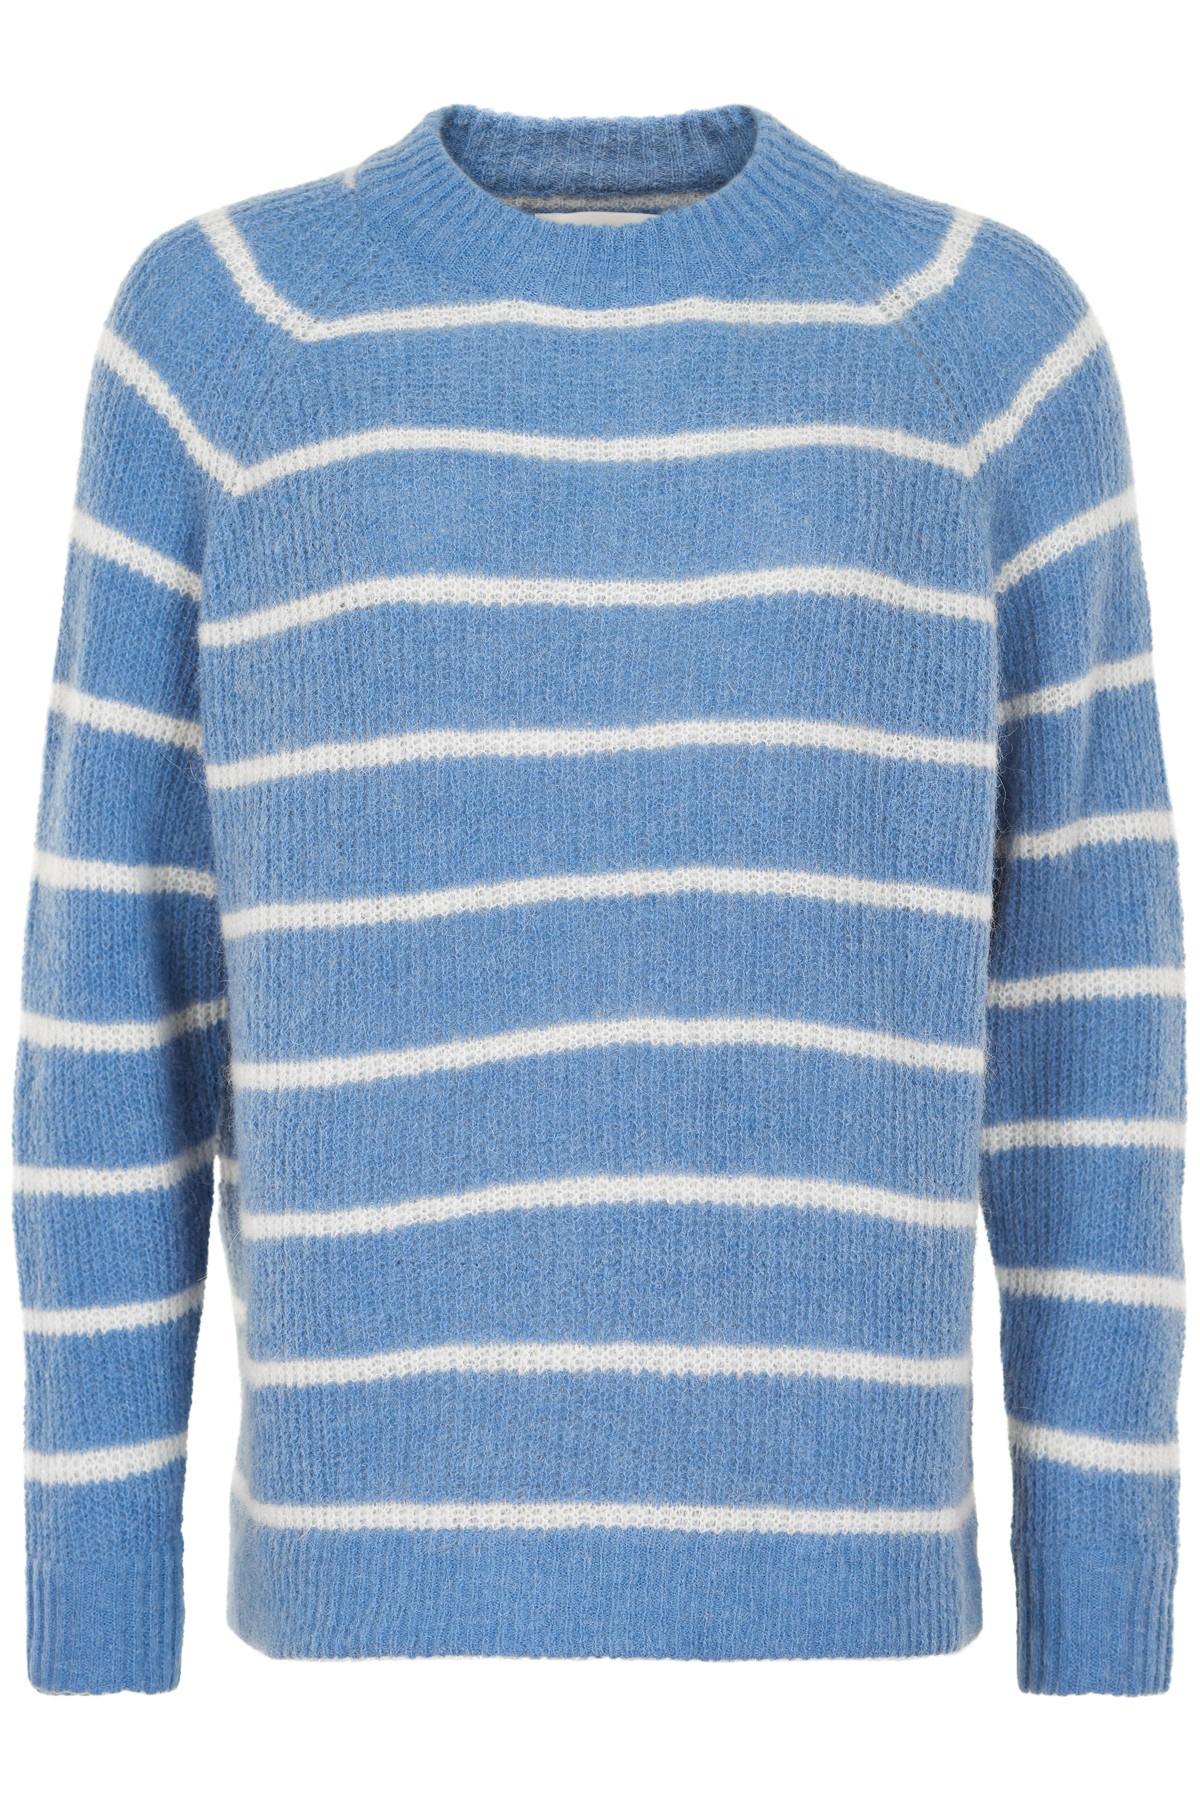 Image of   AND LESS ALBAMBINA PULLOVER 5120209 (Colony Blue, XS)